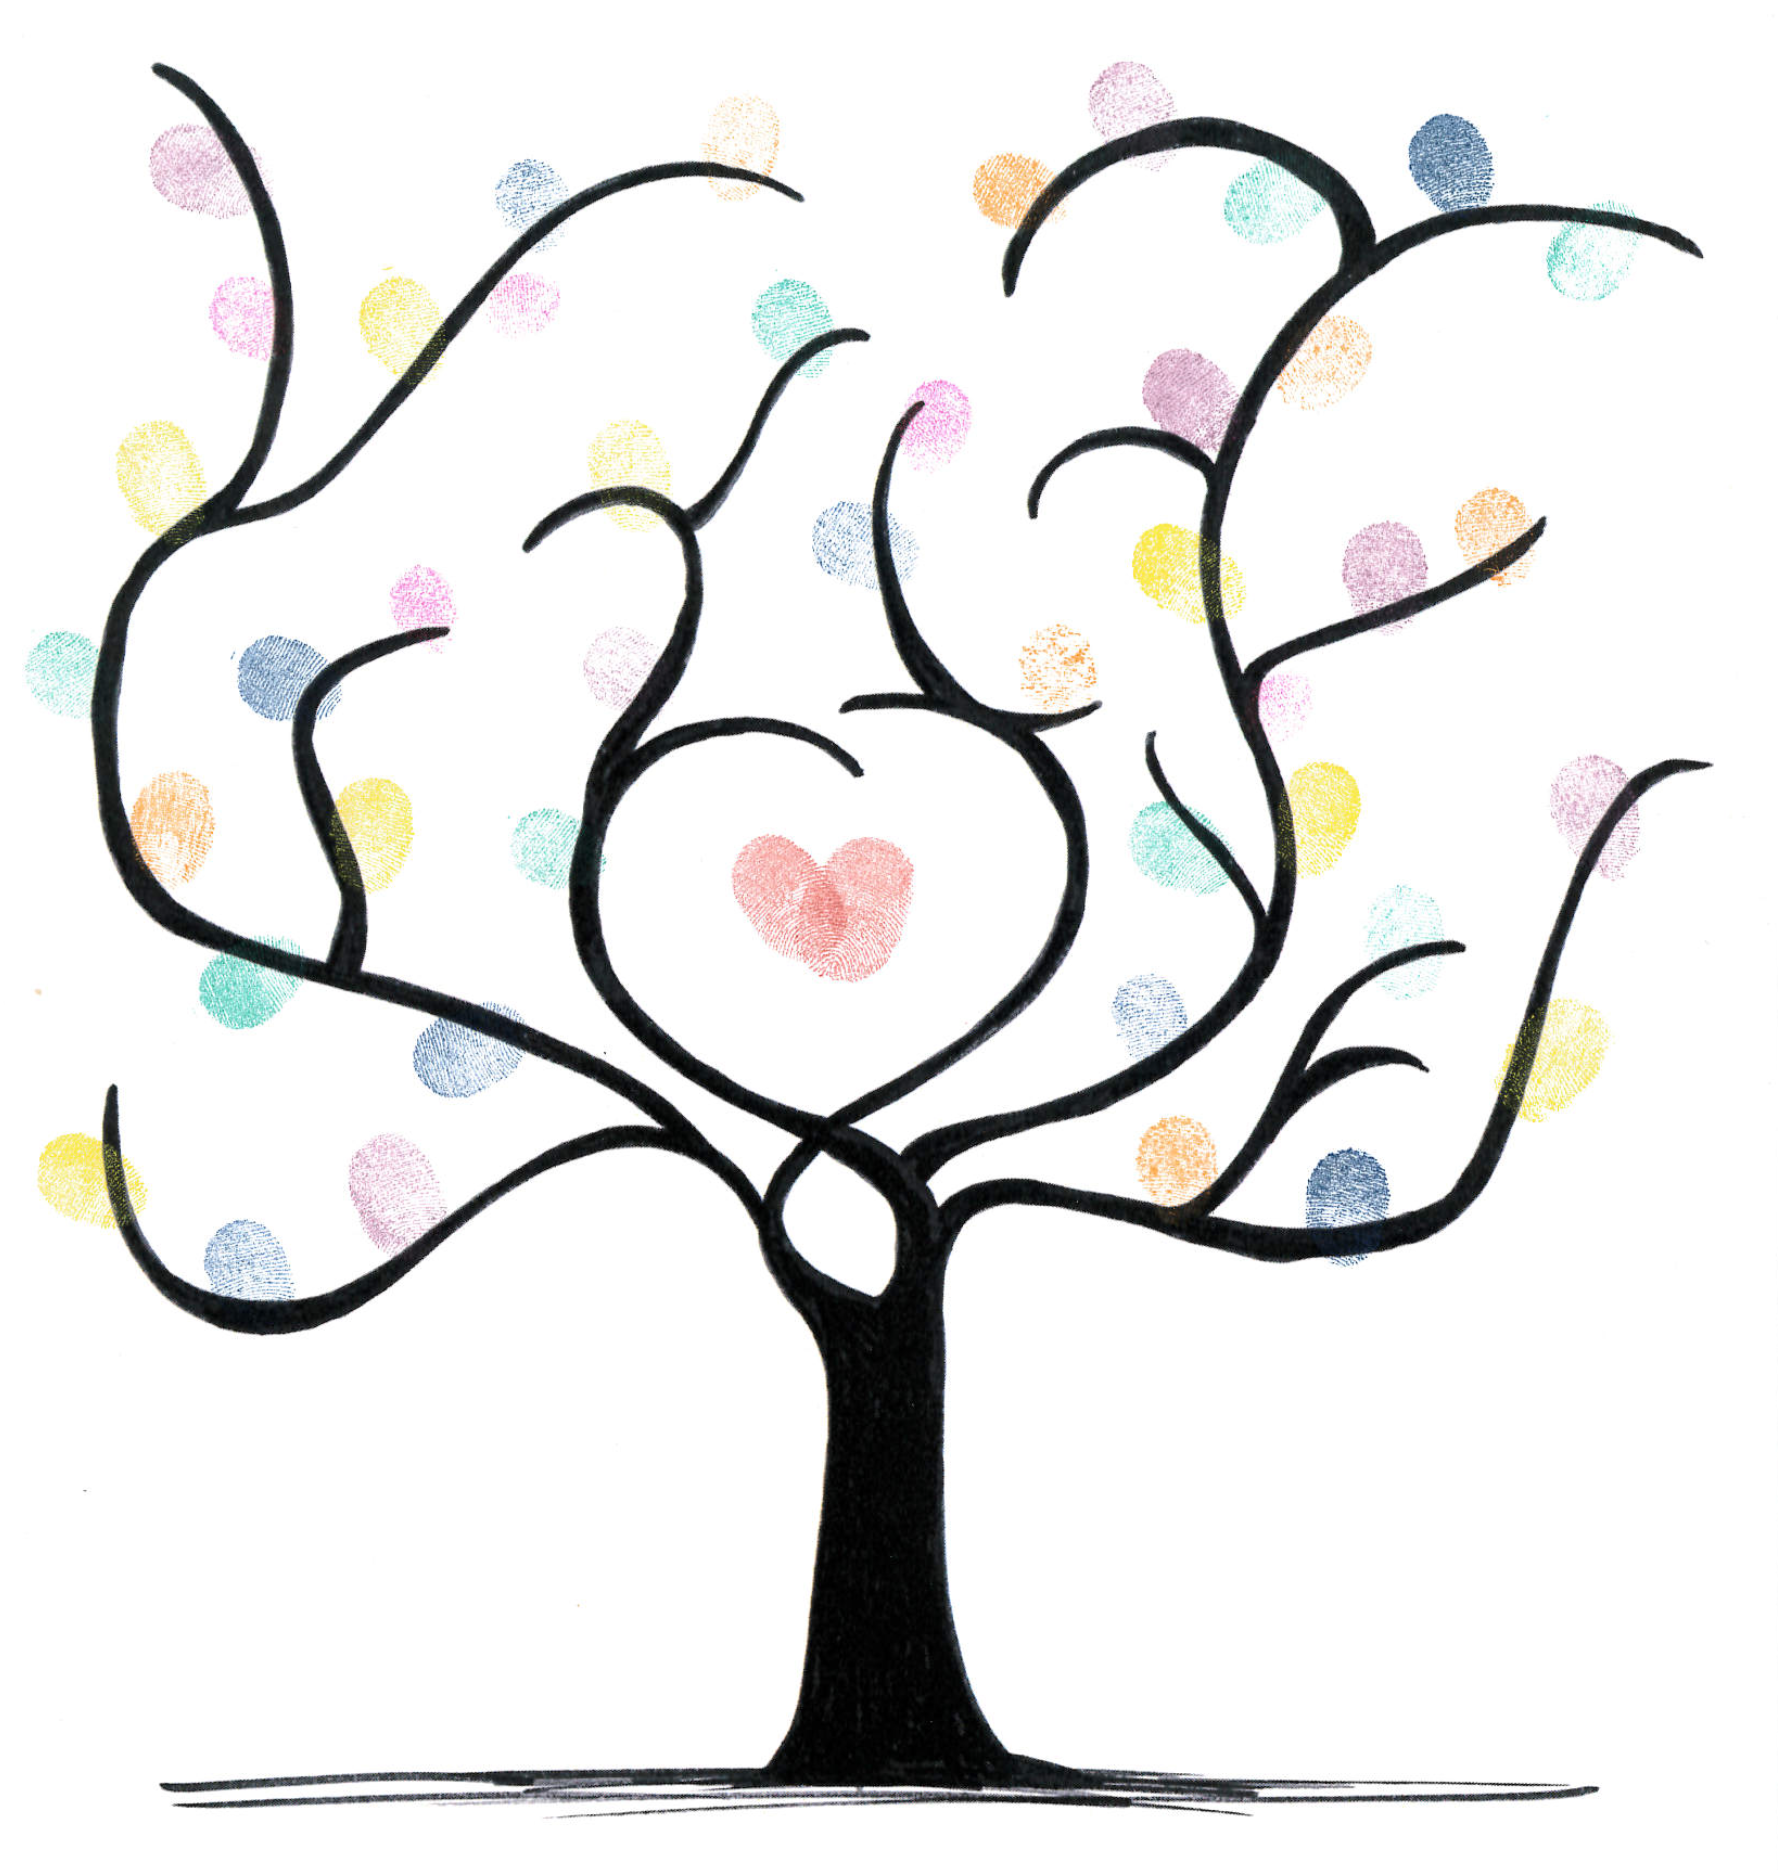 Hochzeit Fingerabdruck Vorlage Kostenlos Free Download Fingerprint Tree Als Gästebuch Especially For You